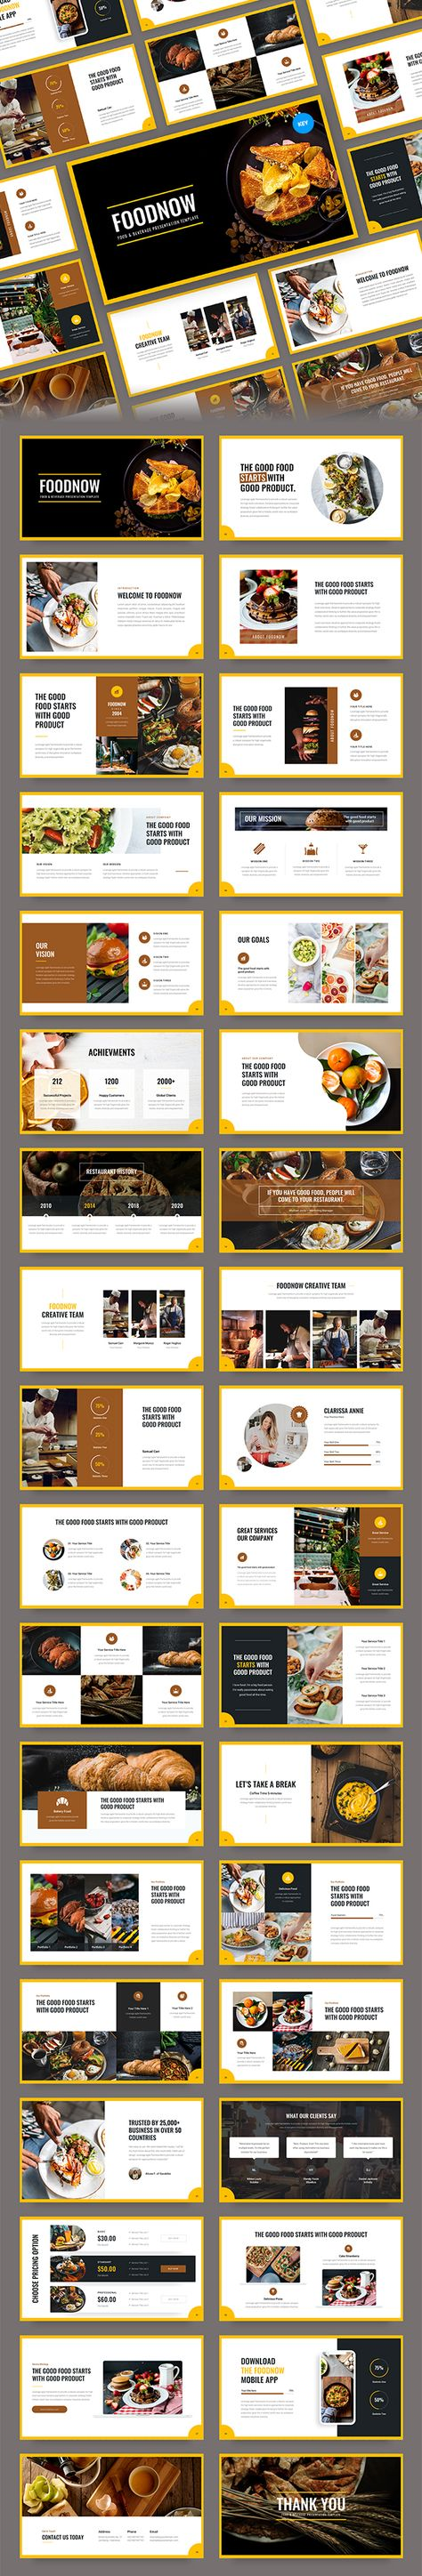 Foodnow - Food Keynote Presentation Template